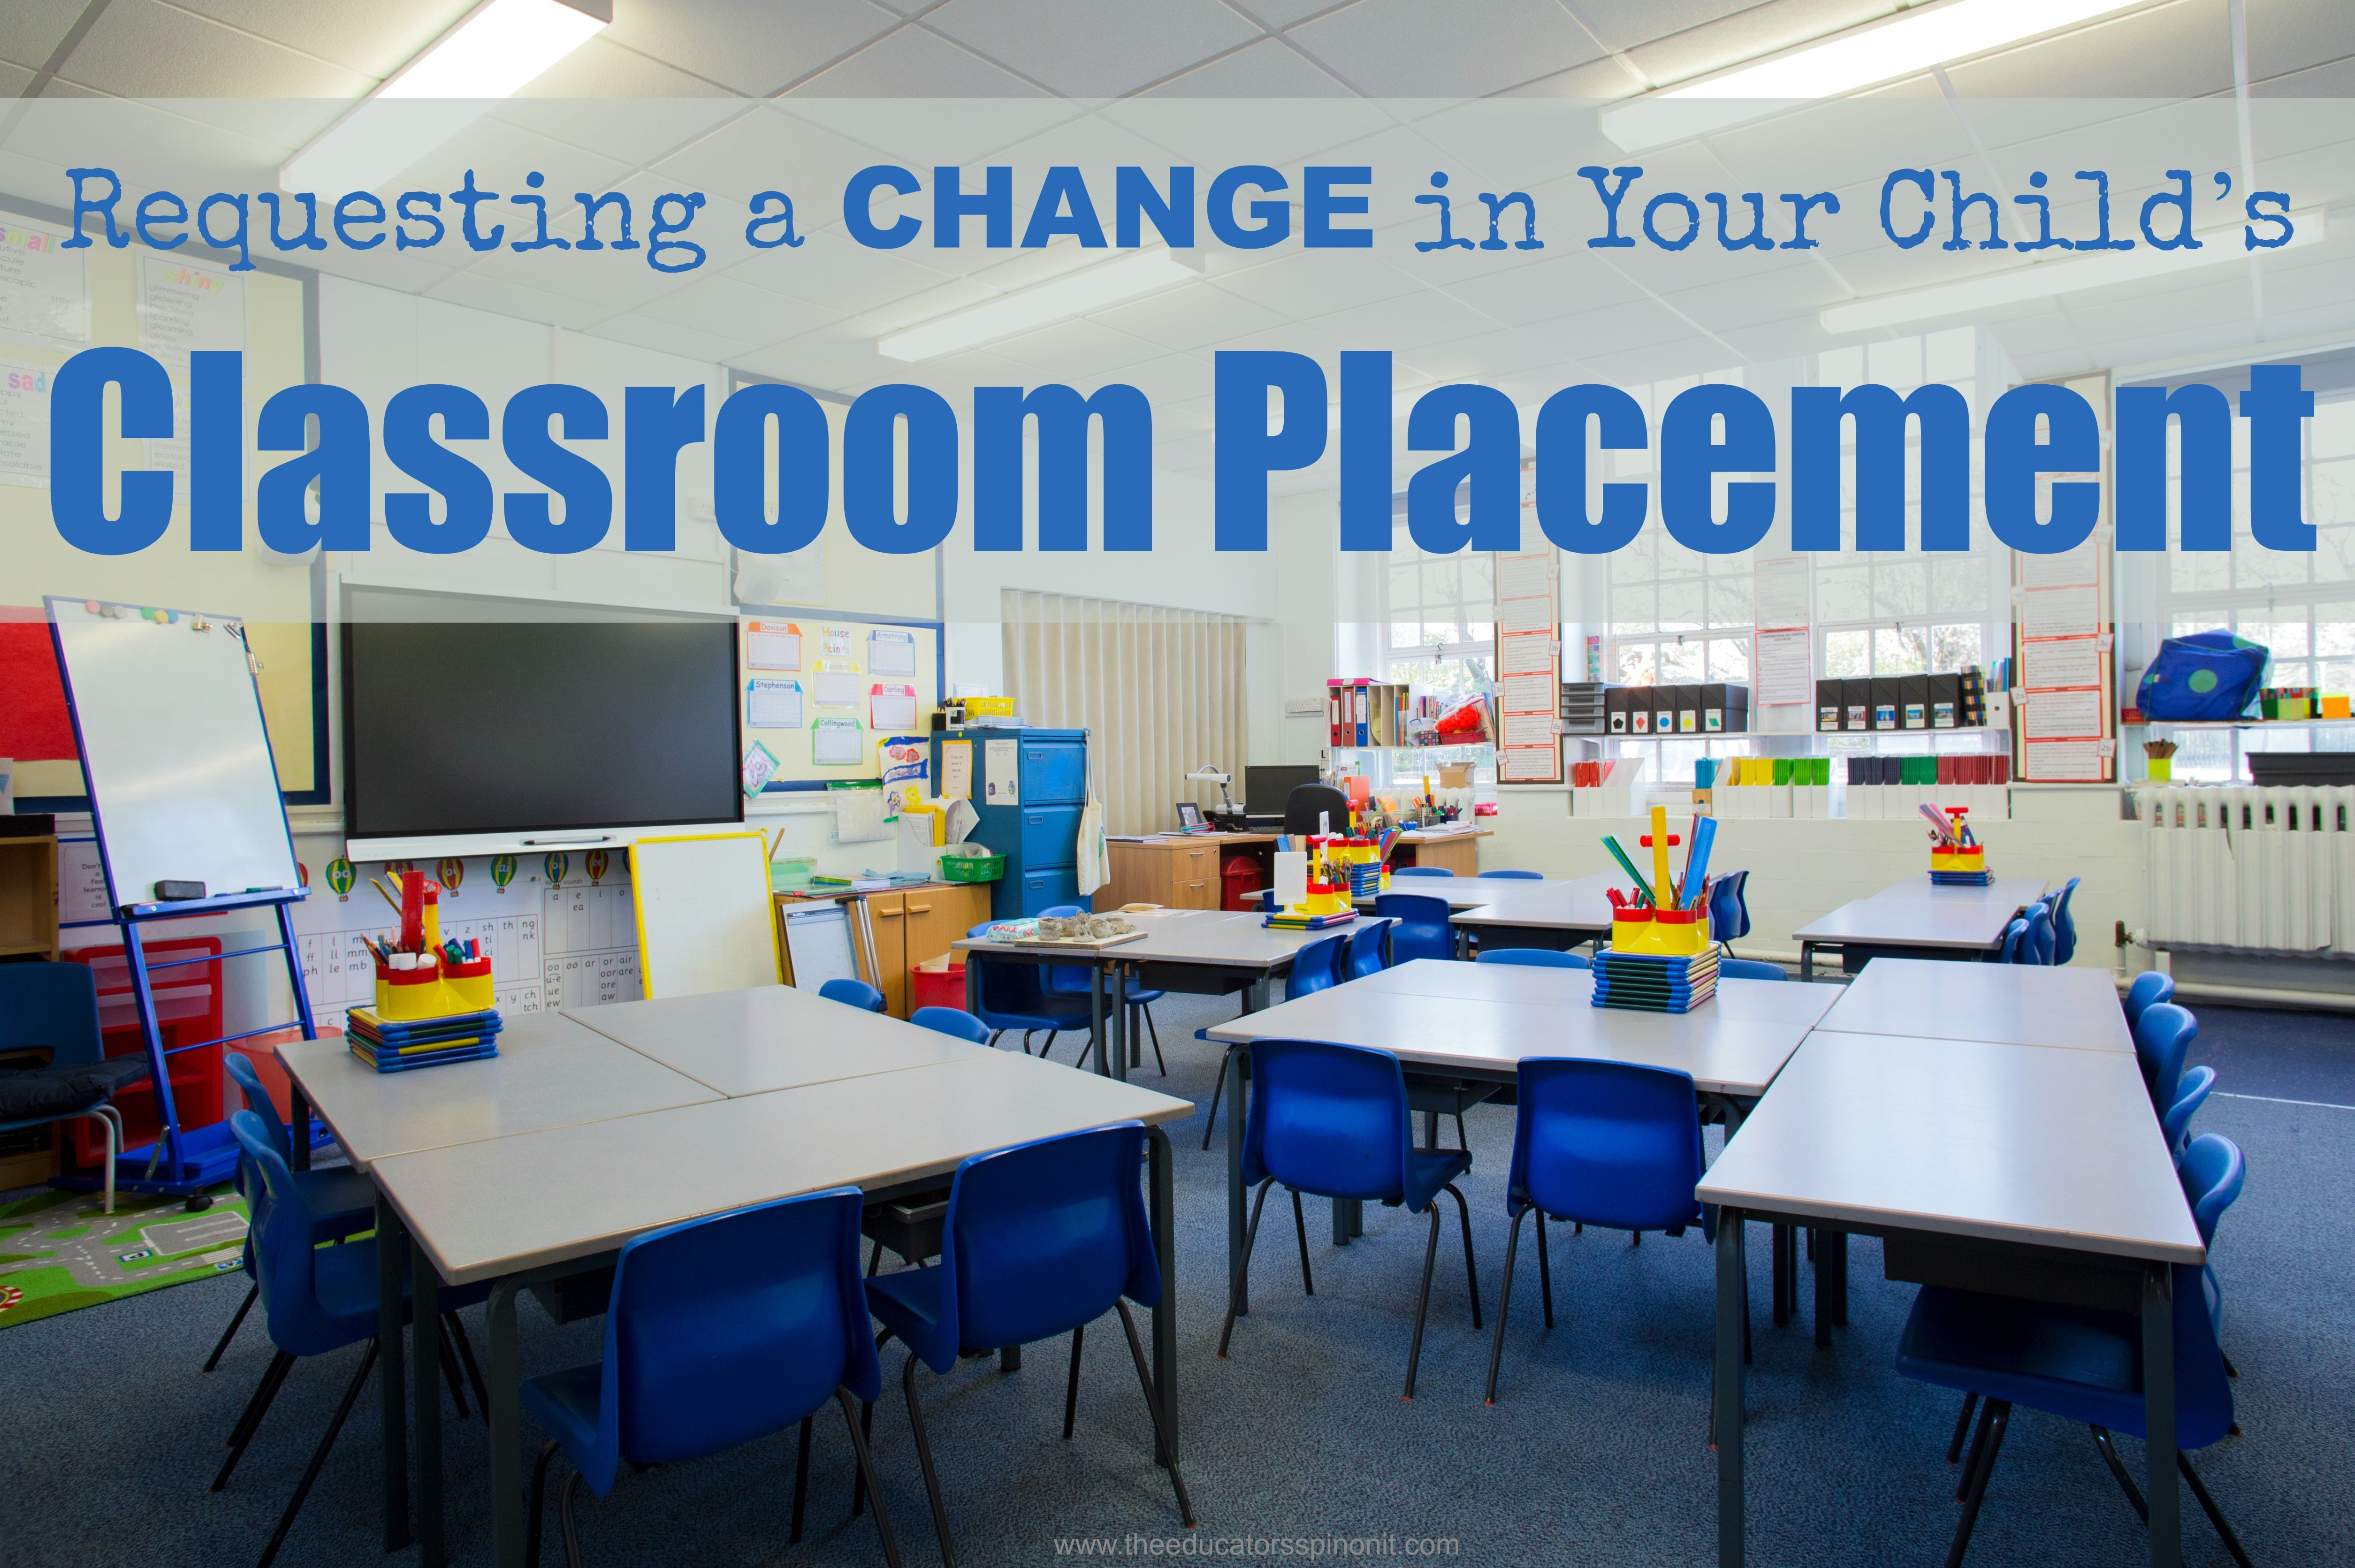 Tips for Requesting a Change in Your Child's Classroom Placement